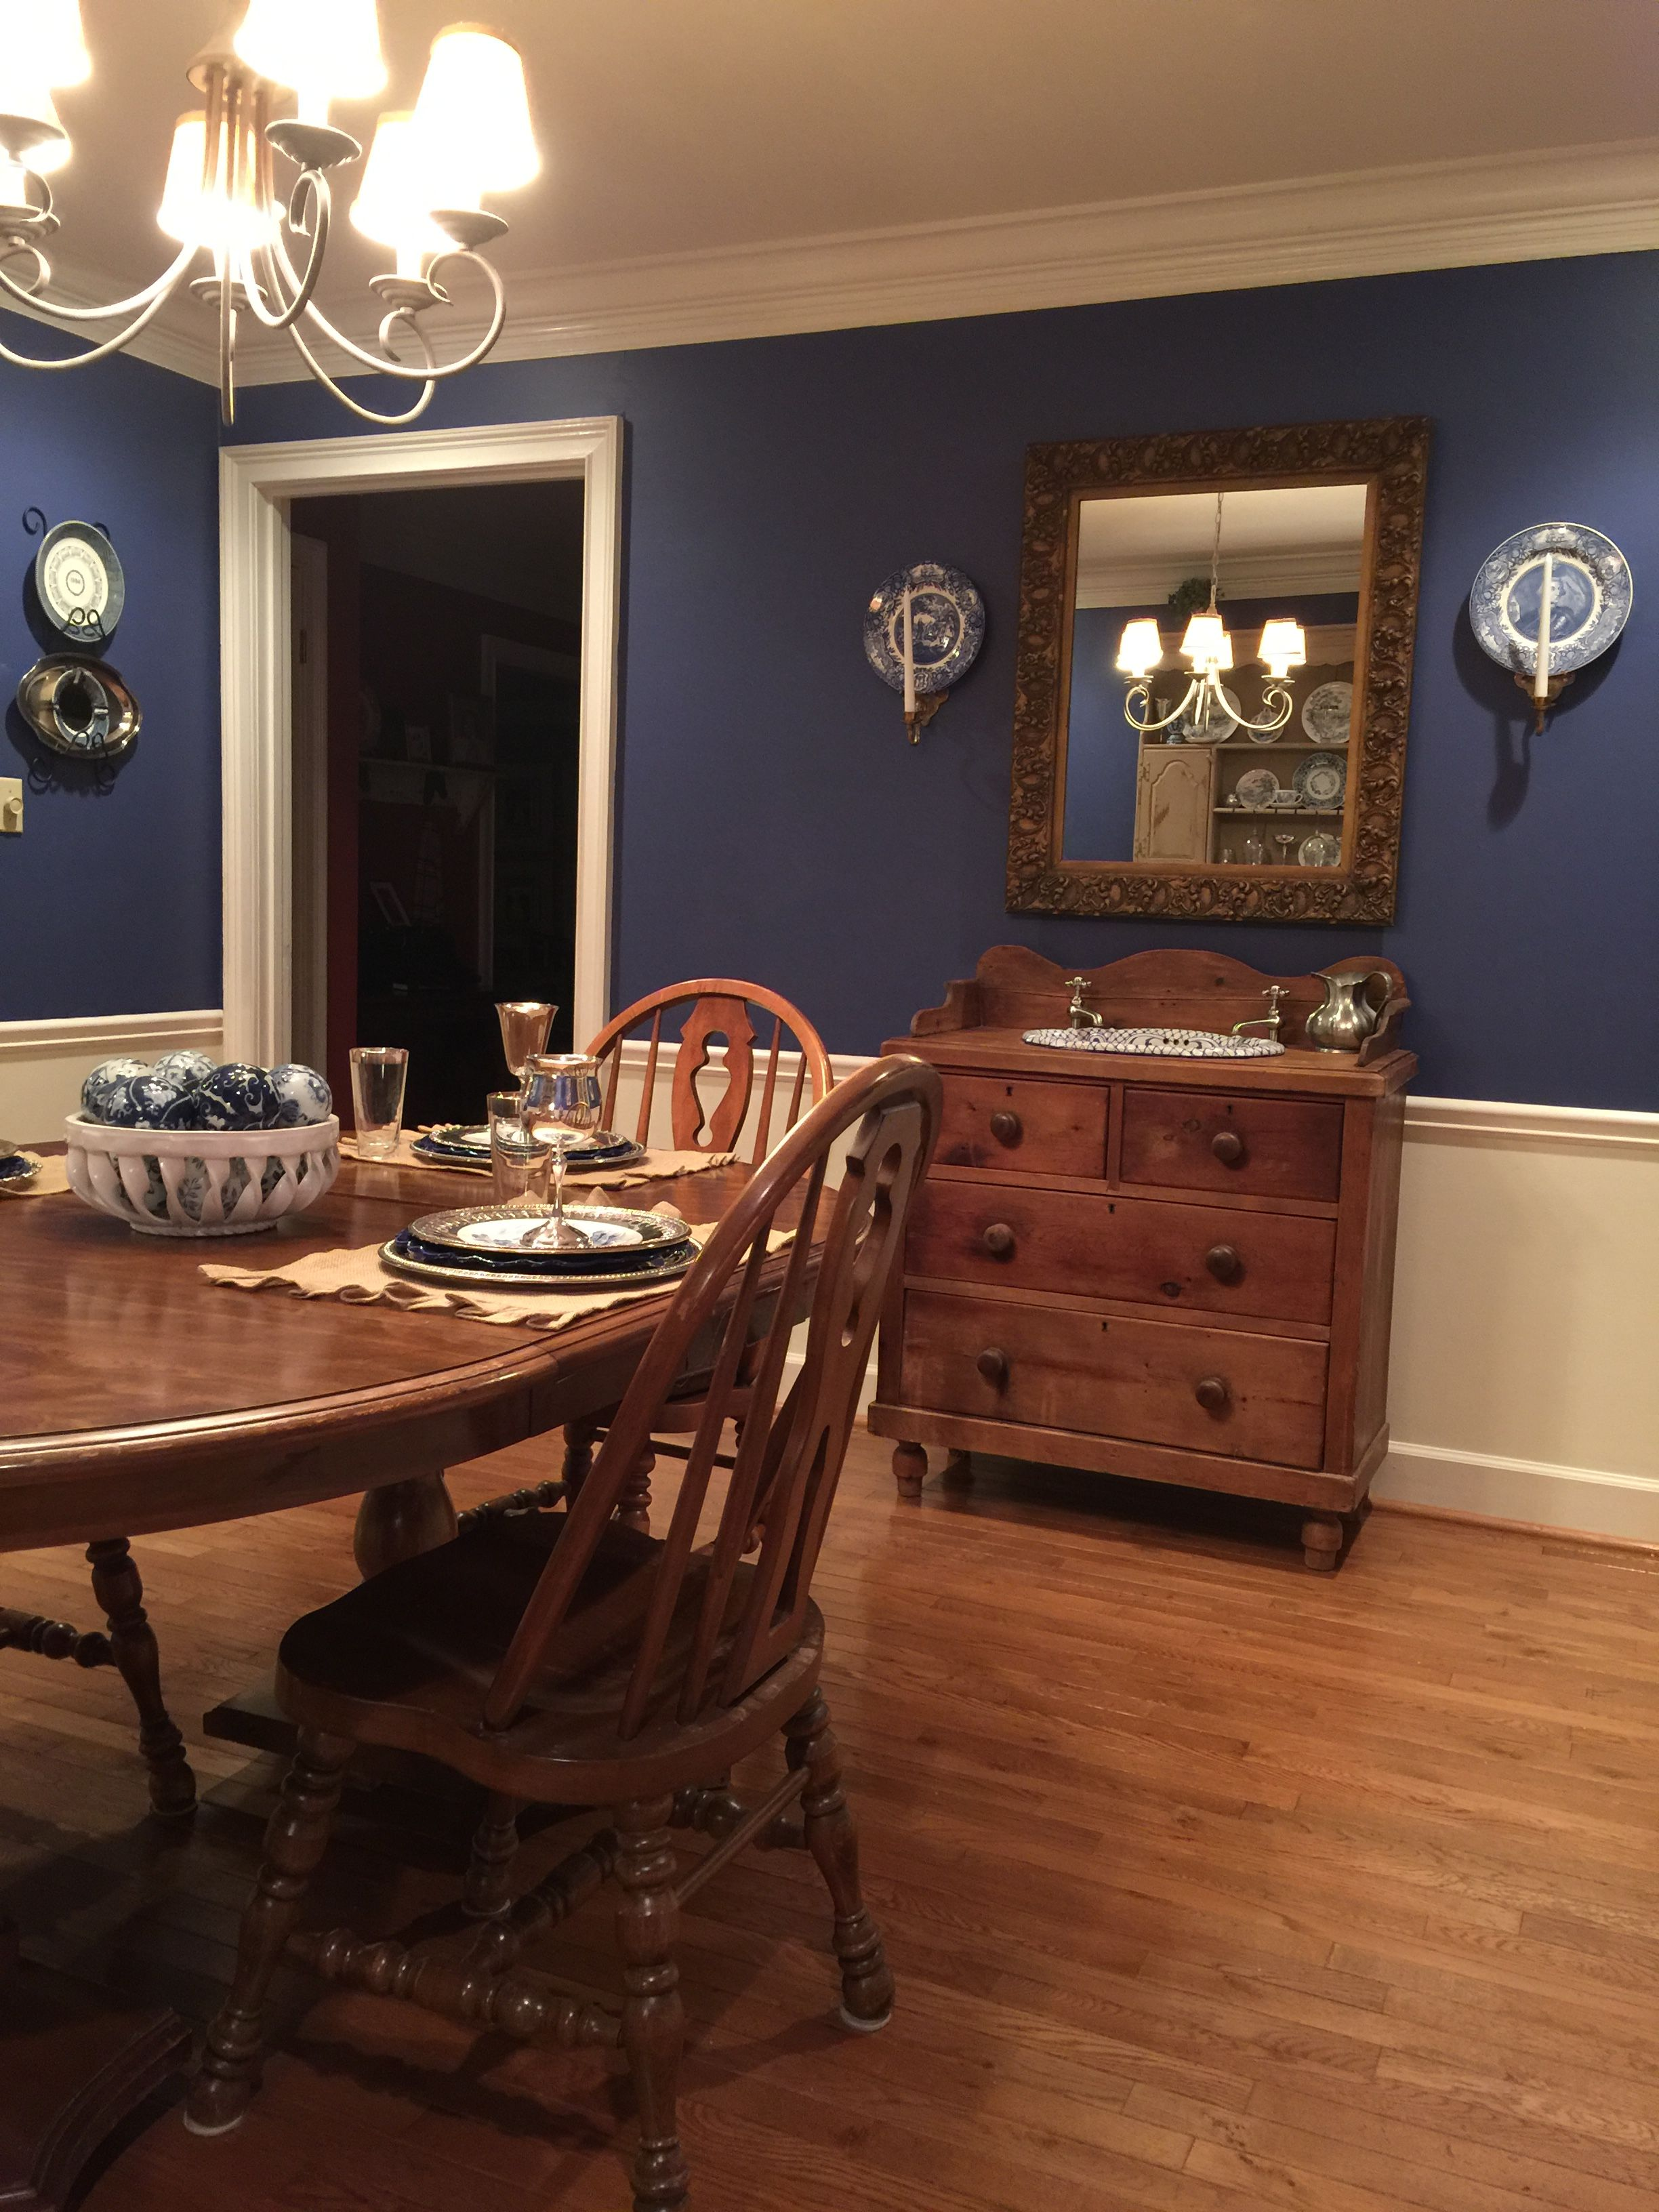 English chest with vintage blue and white sink used in ...